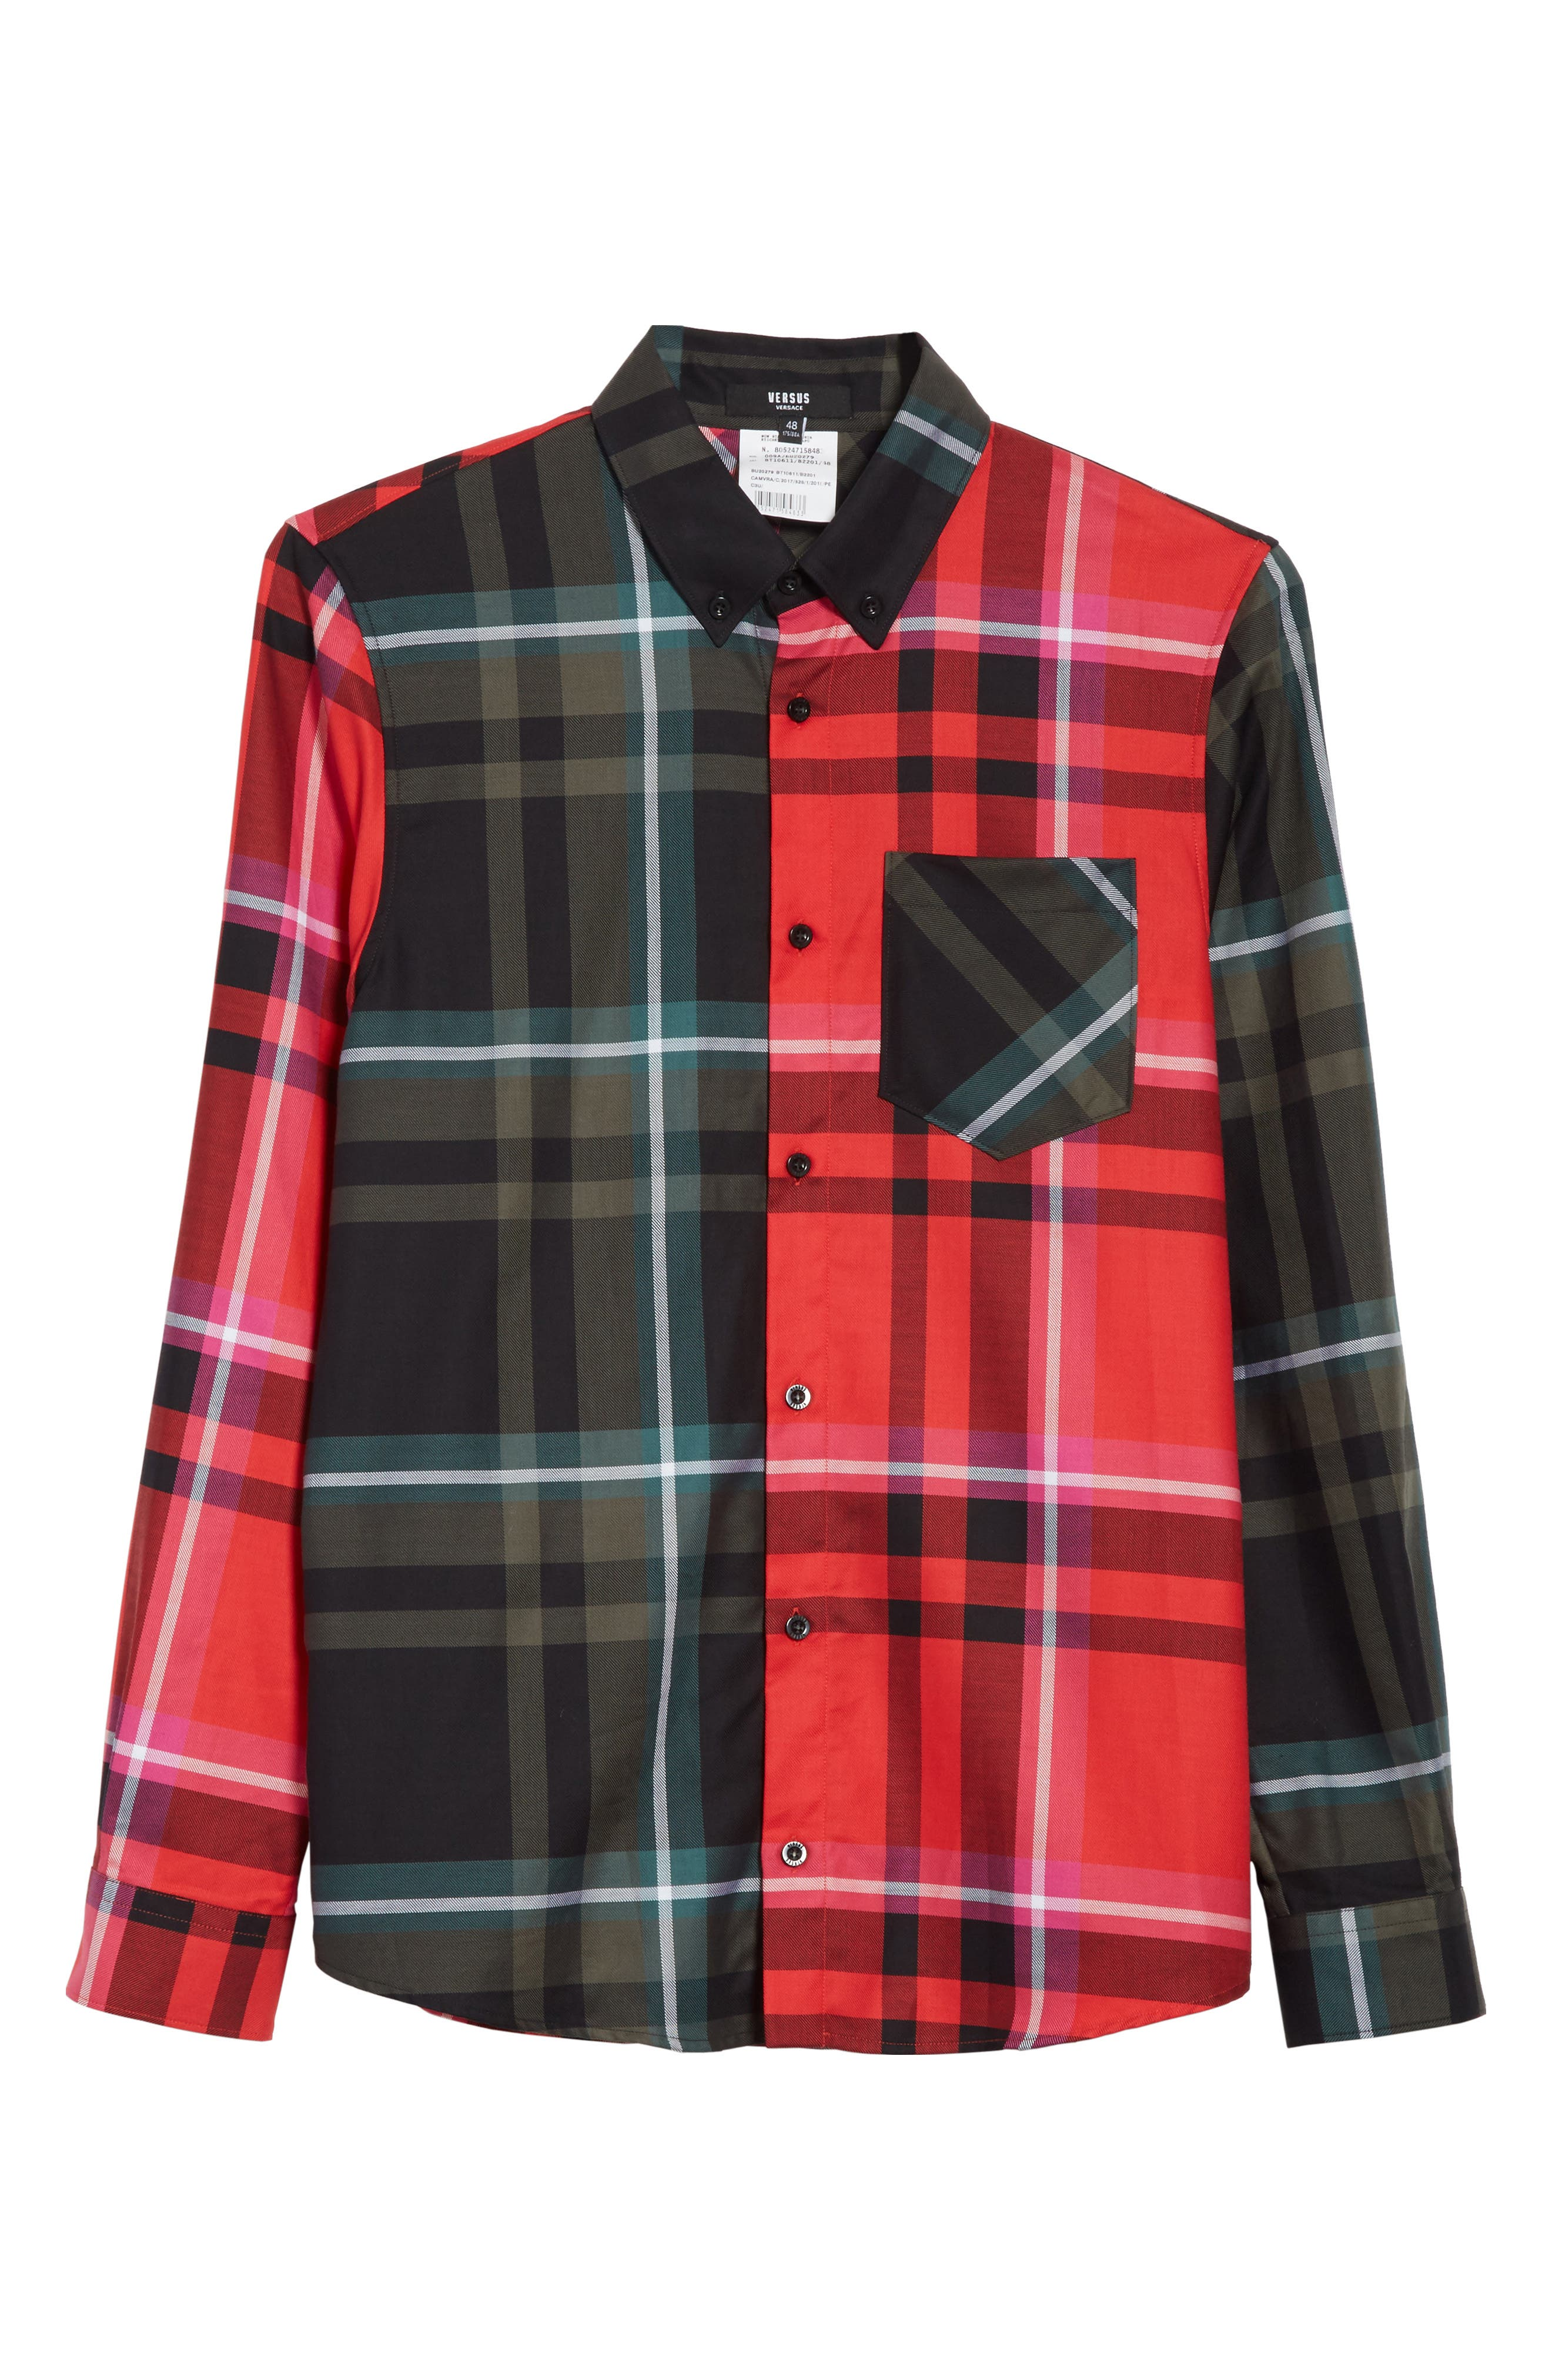 VERSUS by Versace Plaid Woven Shirt,                             Alternate thumbnail 6, color,                             Red Multi